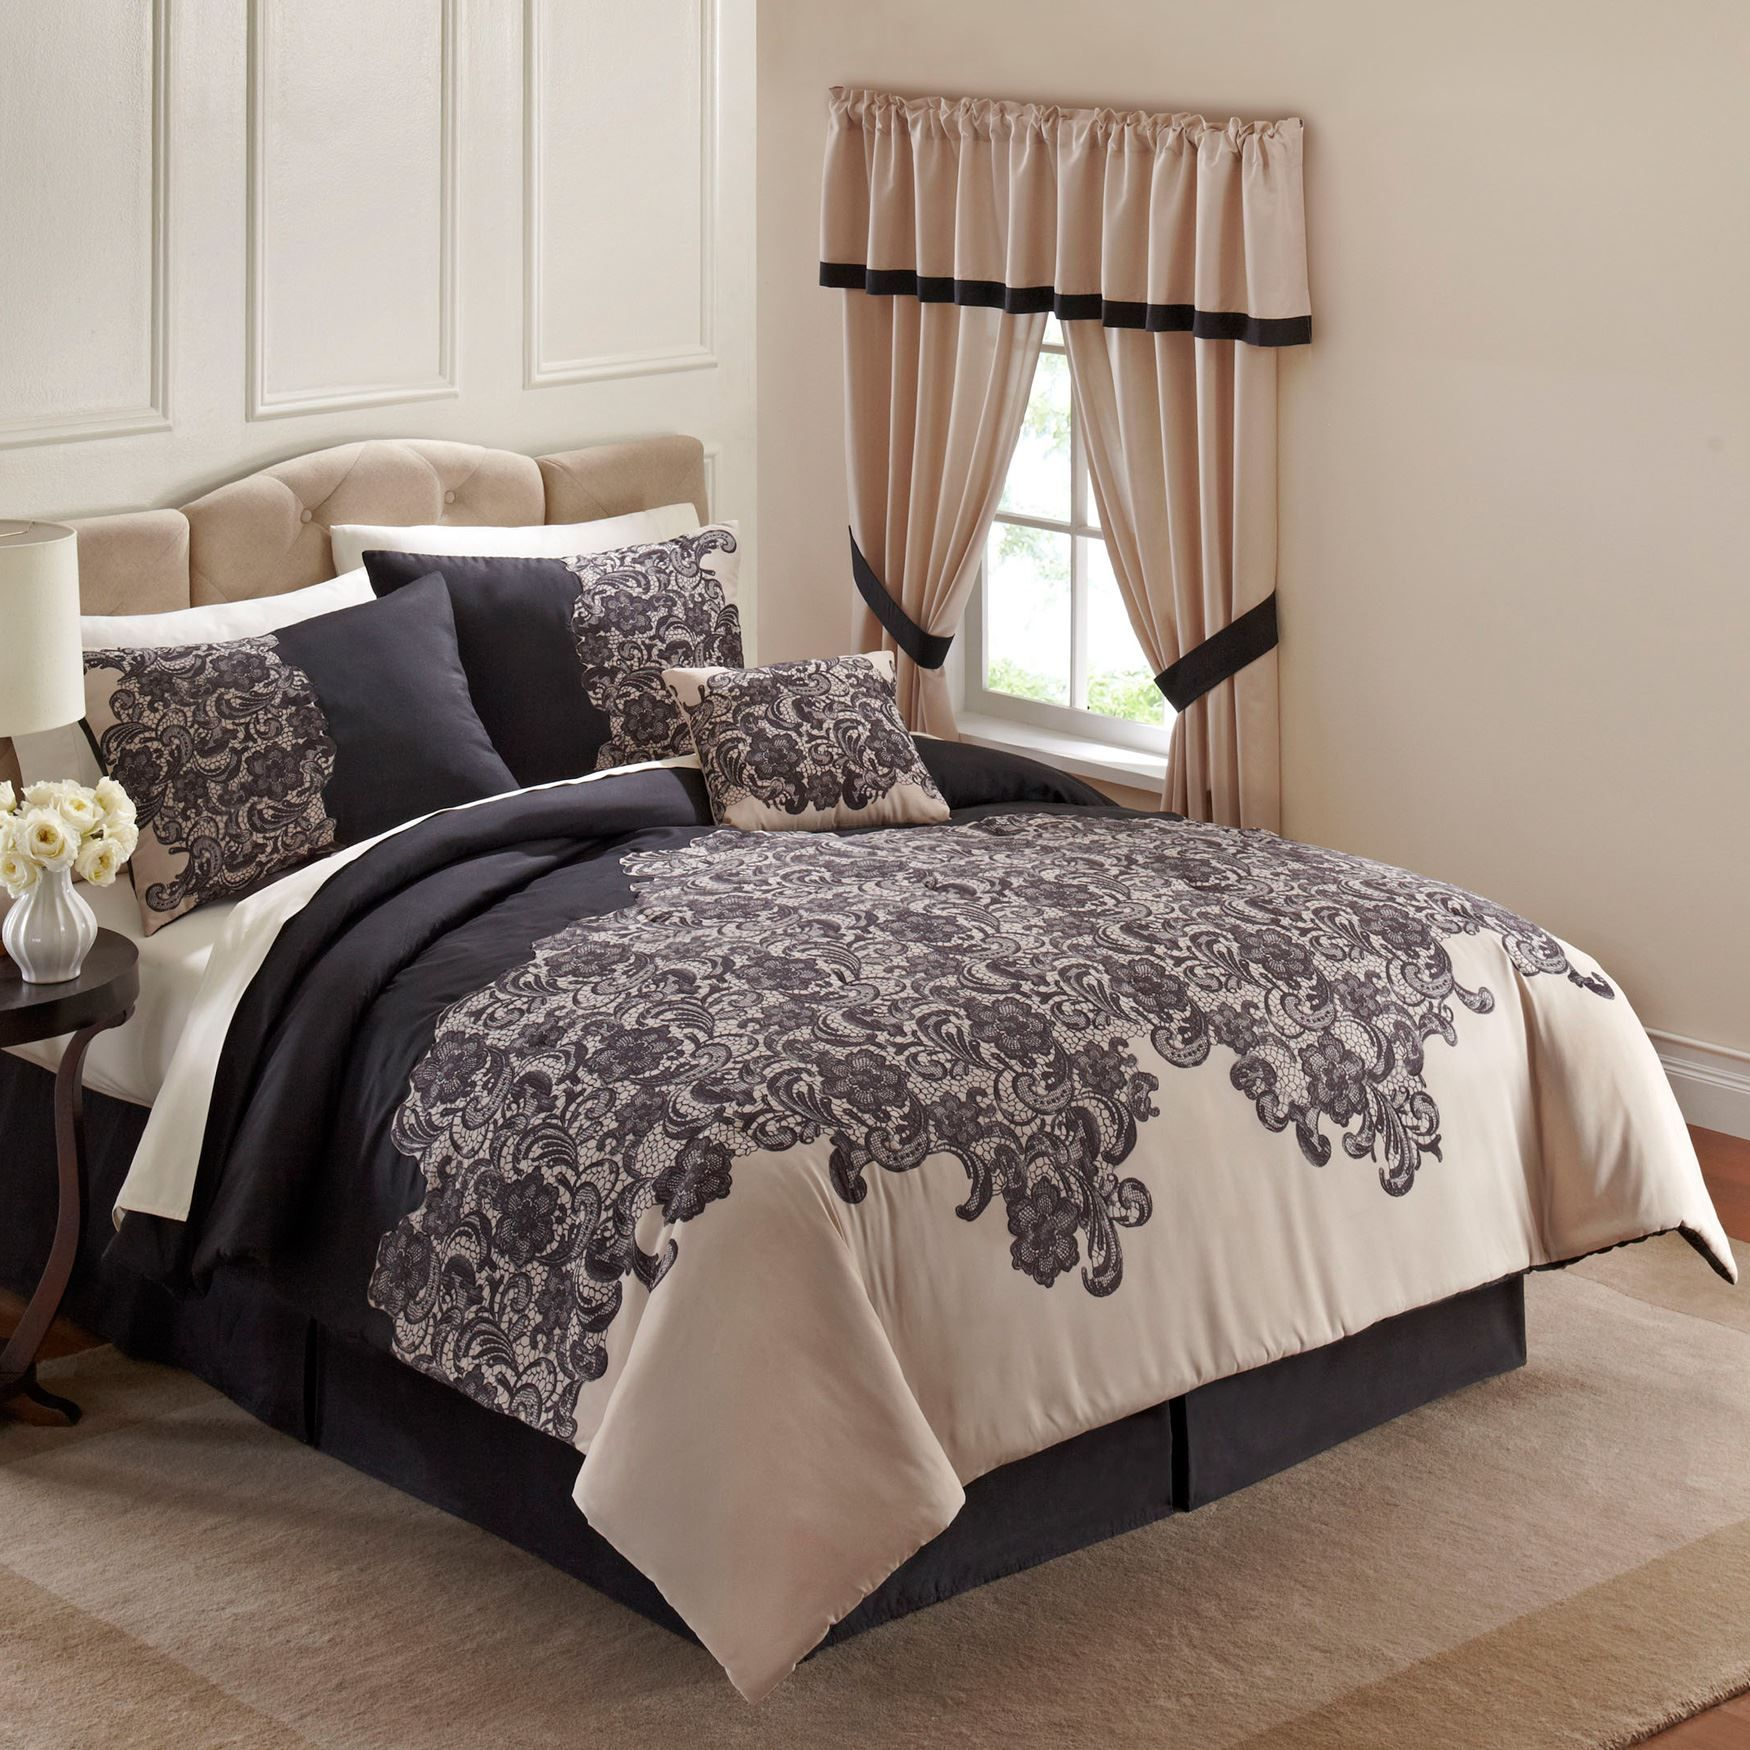 This Beautifully Detailed 160 Comforter Set 160 Brings A New